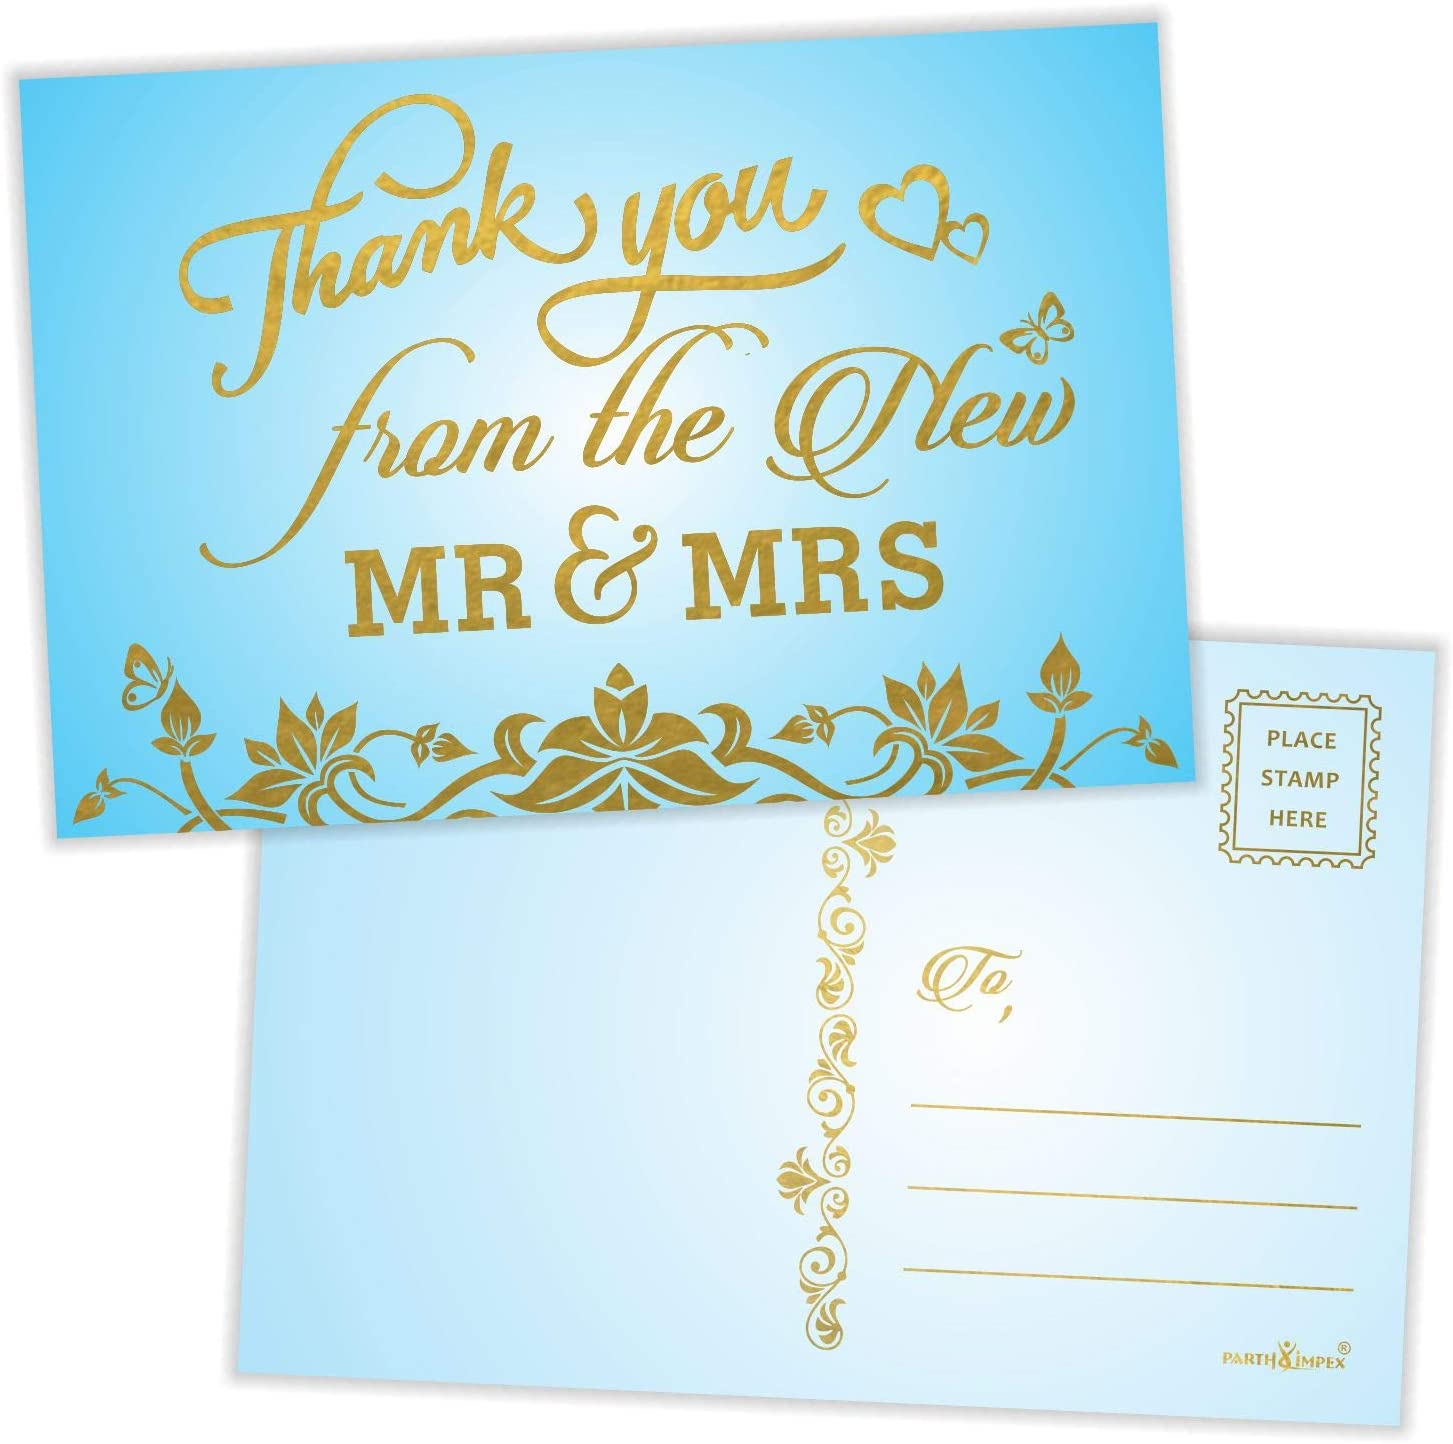 Thank You from the New Mr. and Mrs. Postcards (Pack of 50) Gold Foil Stamping with Mailing Side 4